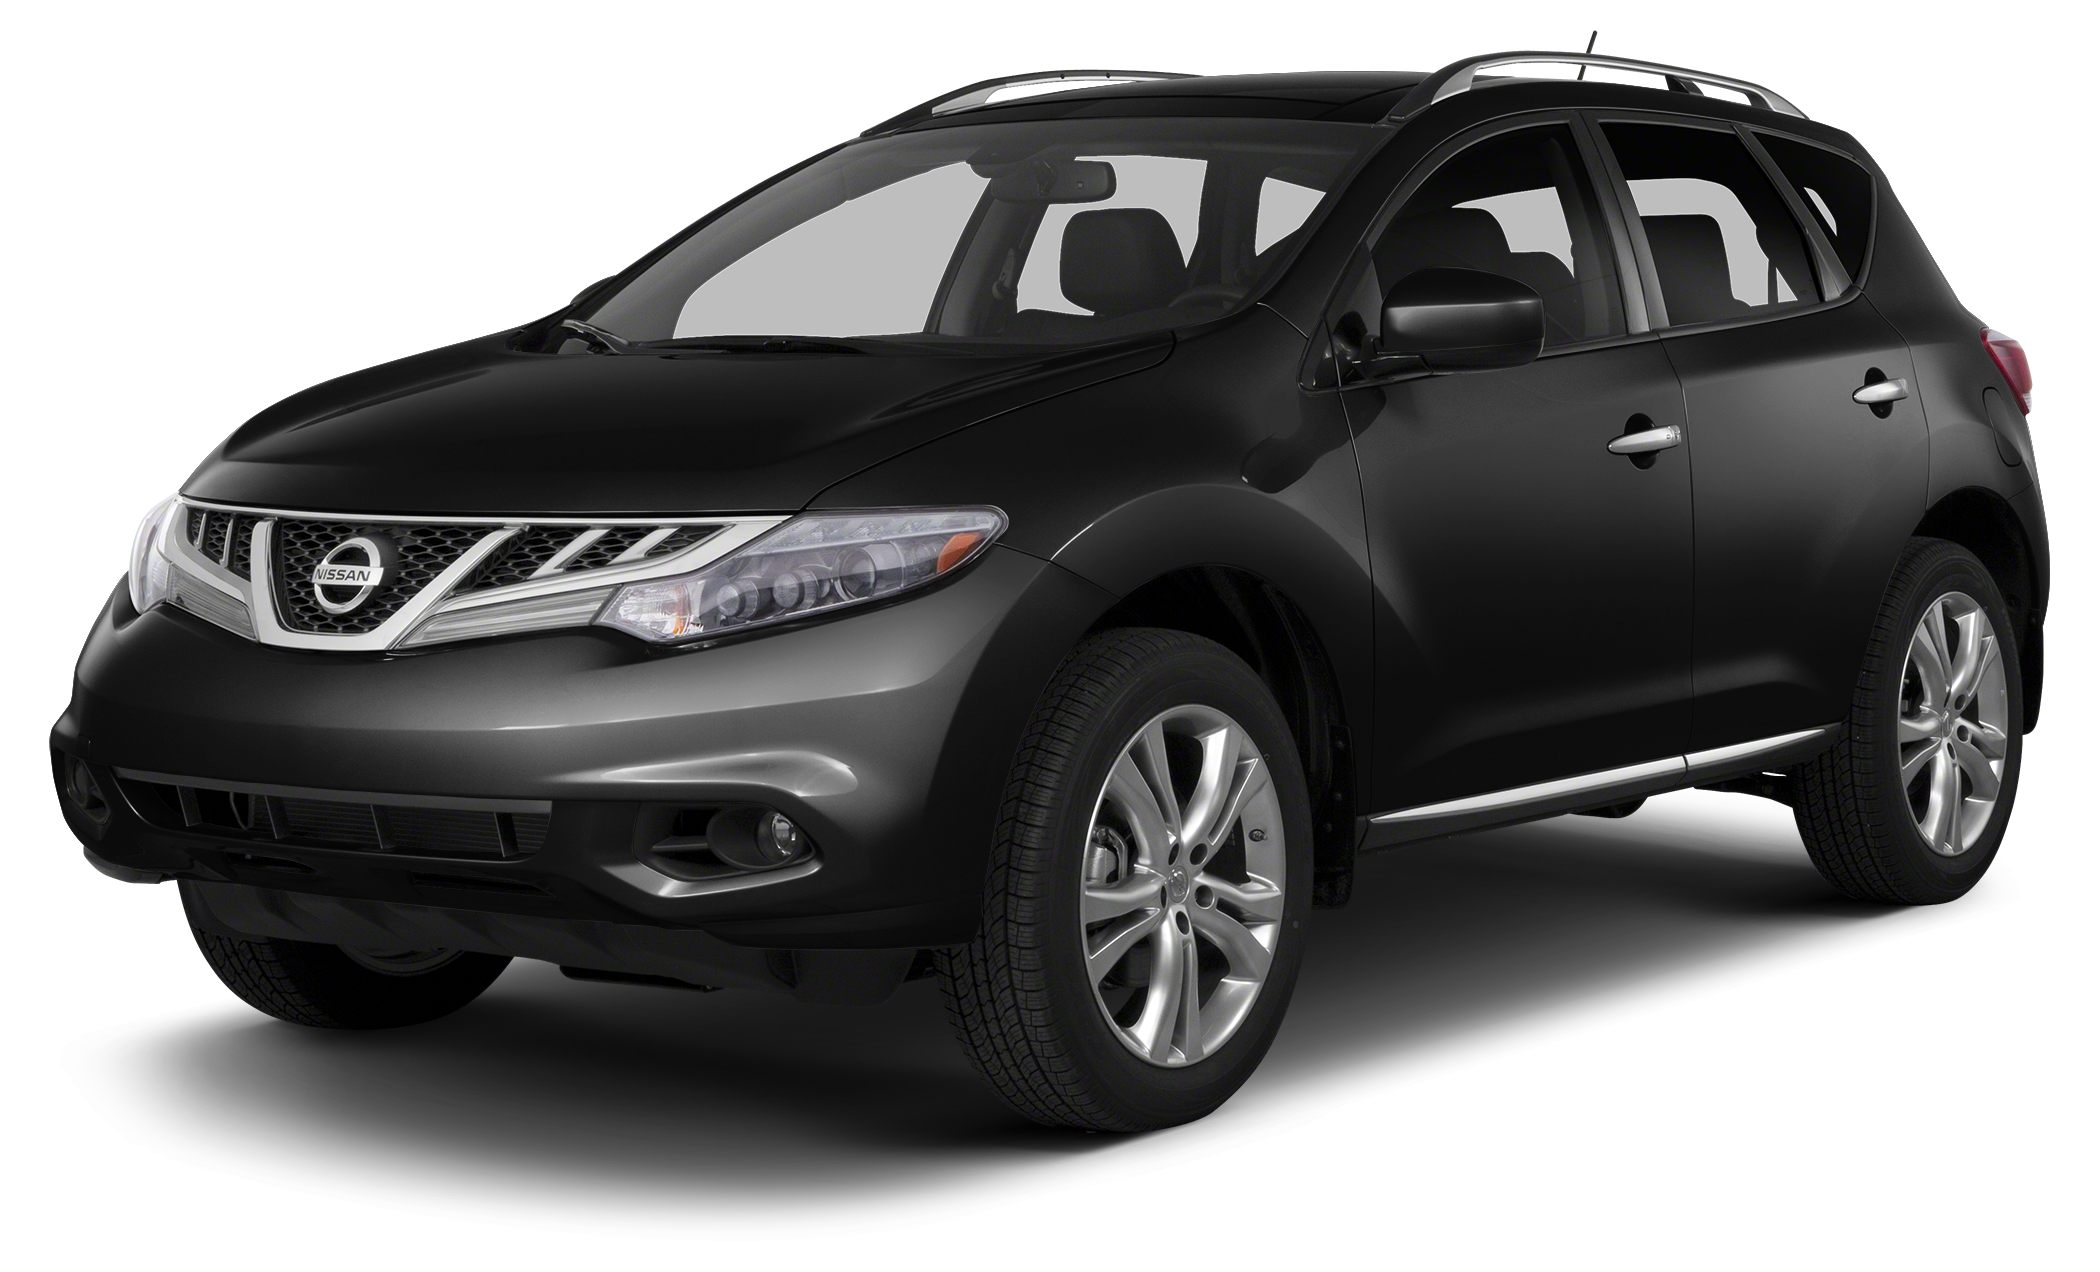 2013 Nissan Murano S AWD bought here when new and serviced here 1 owner non smoker  Stylish cross